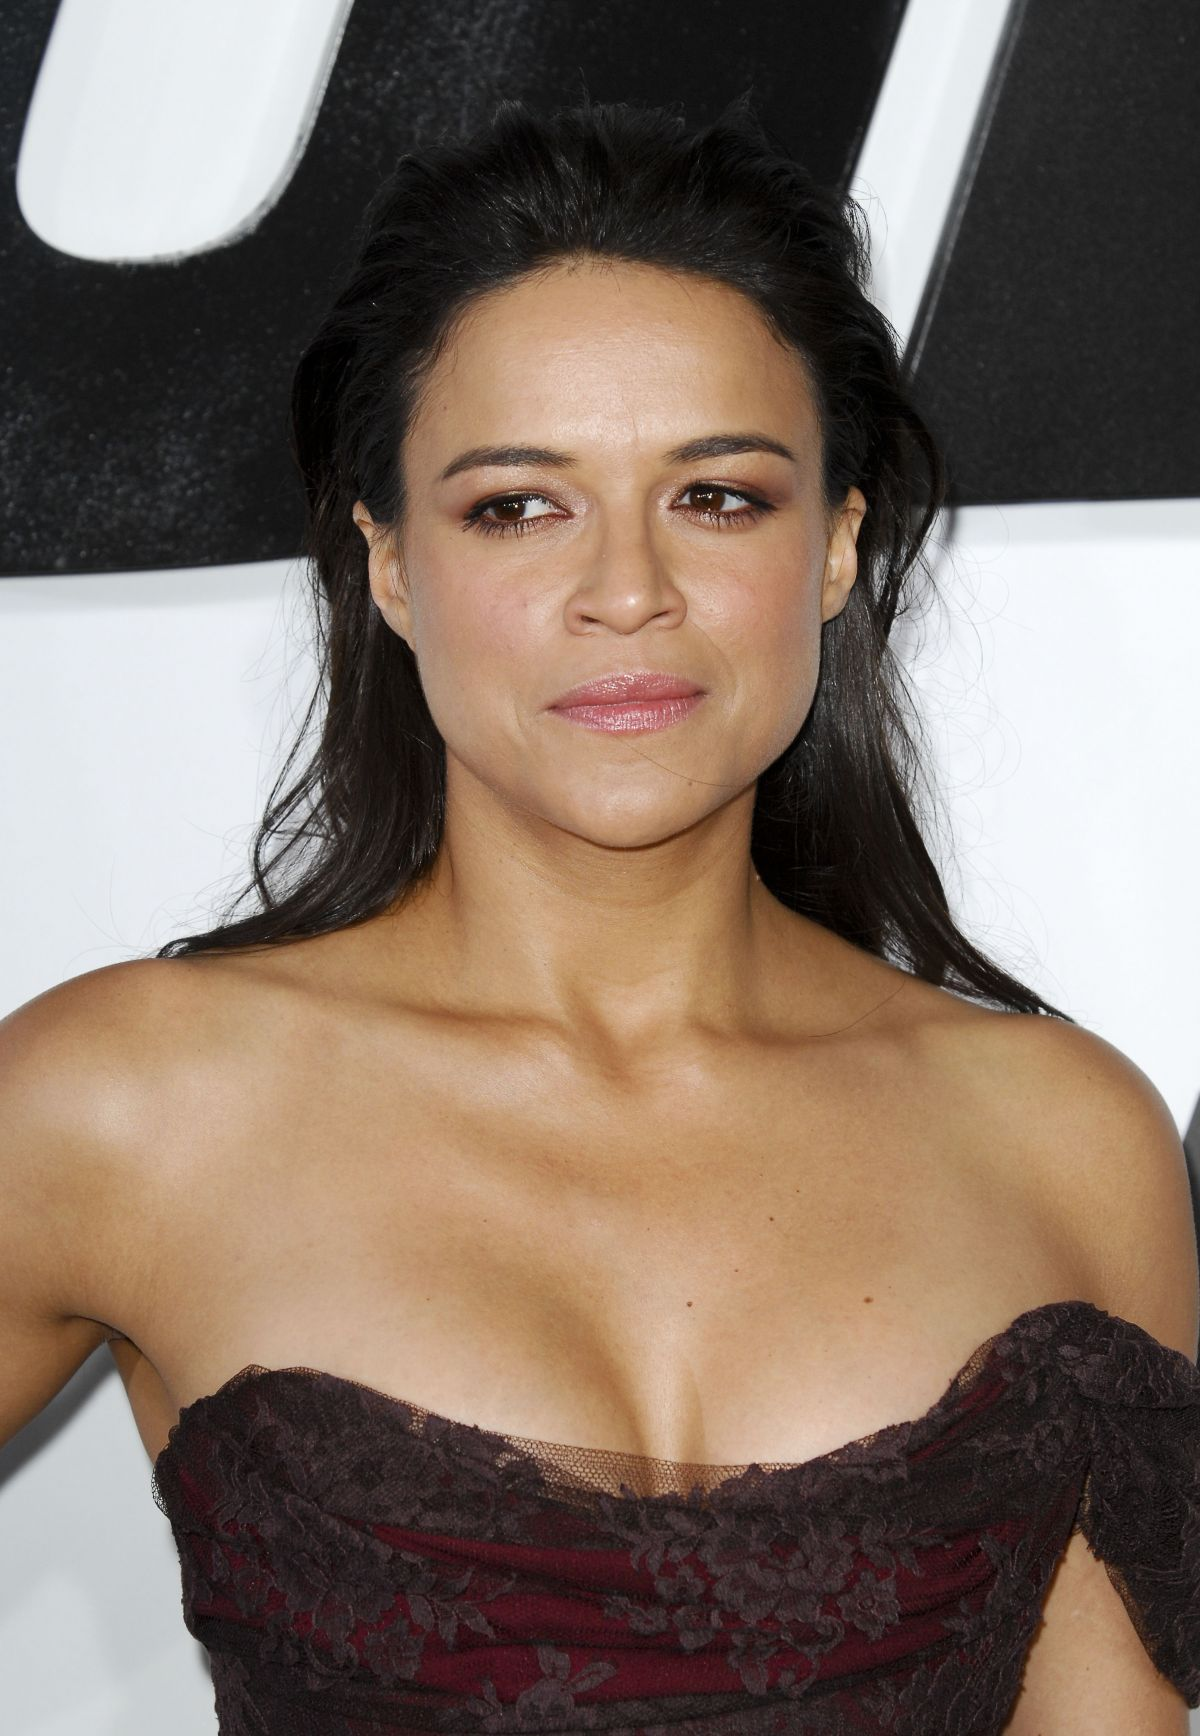 Celebrity Michelle Rodriguez nude photos 2019